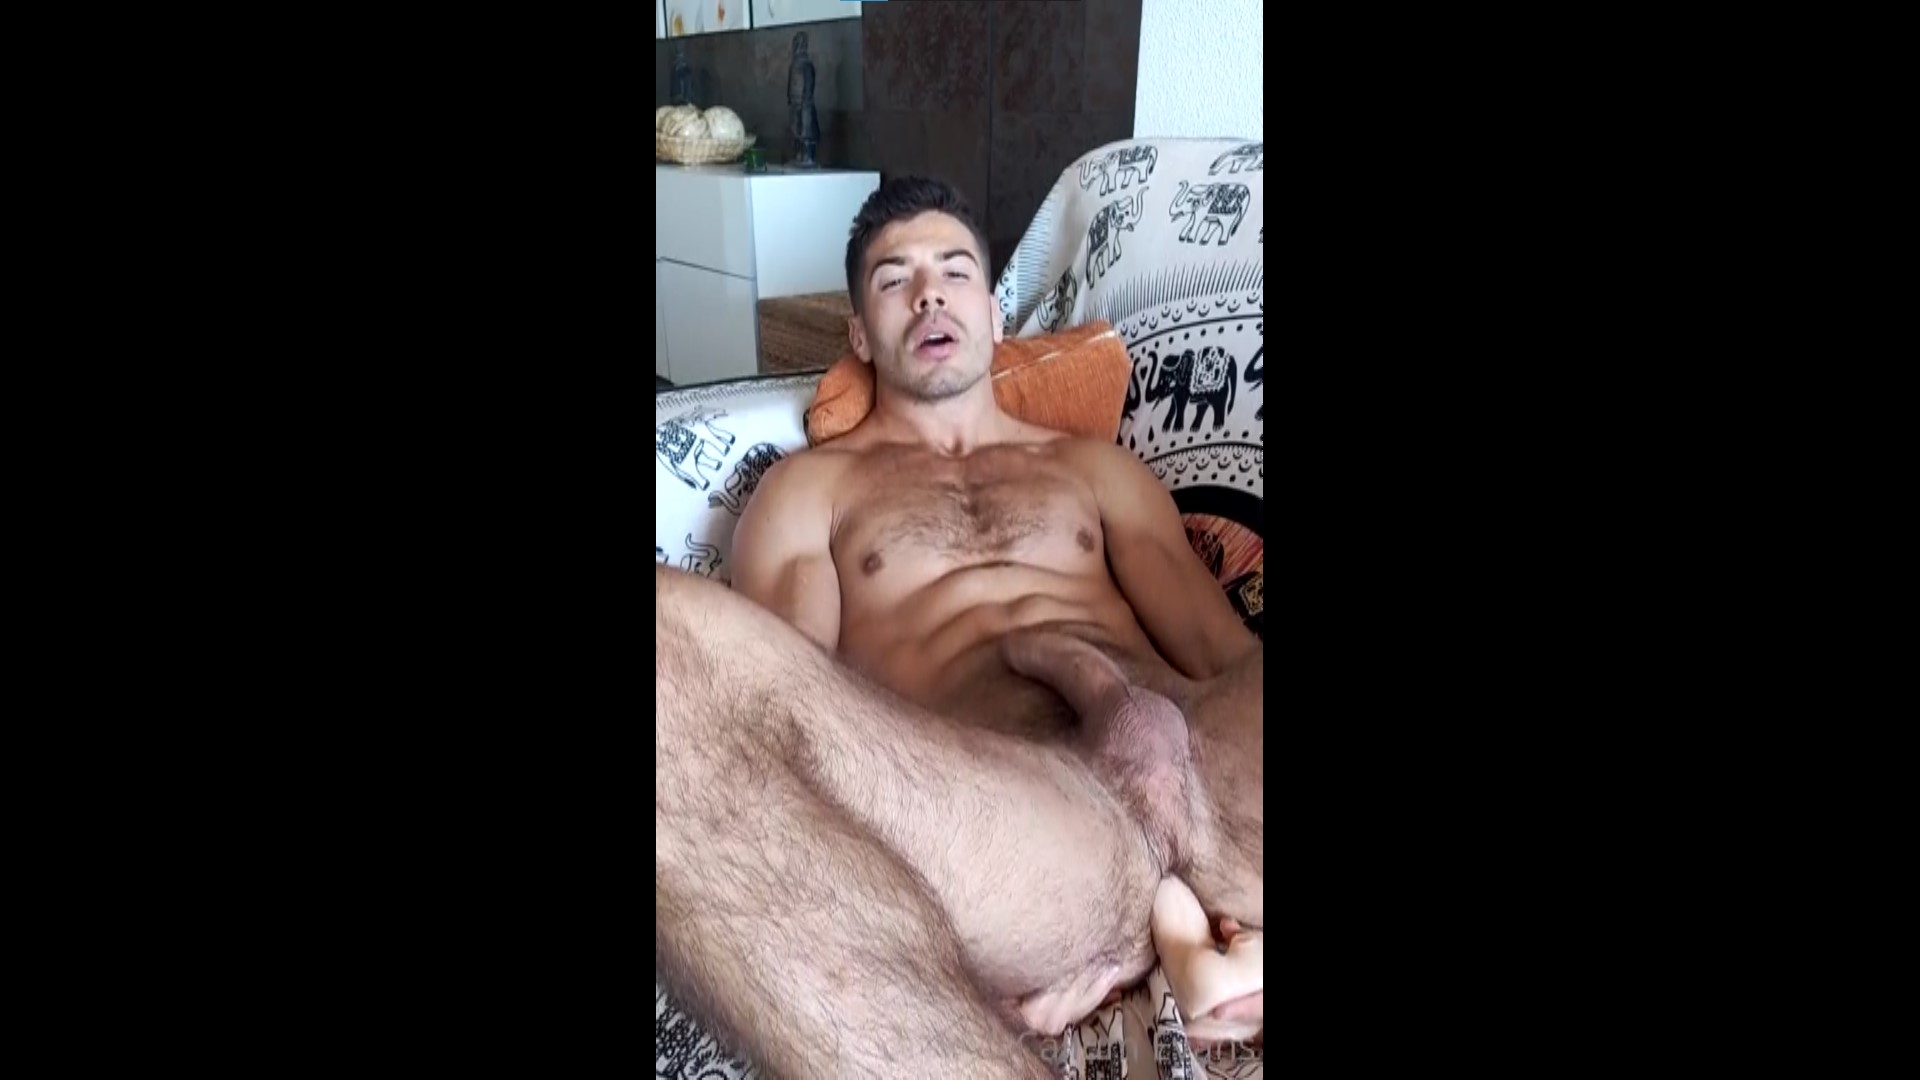 Fucking myself with a dildo and jerking off hard - Callum Evans